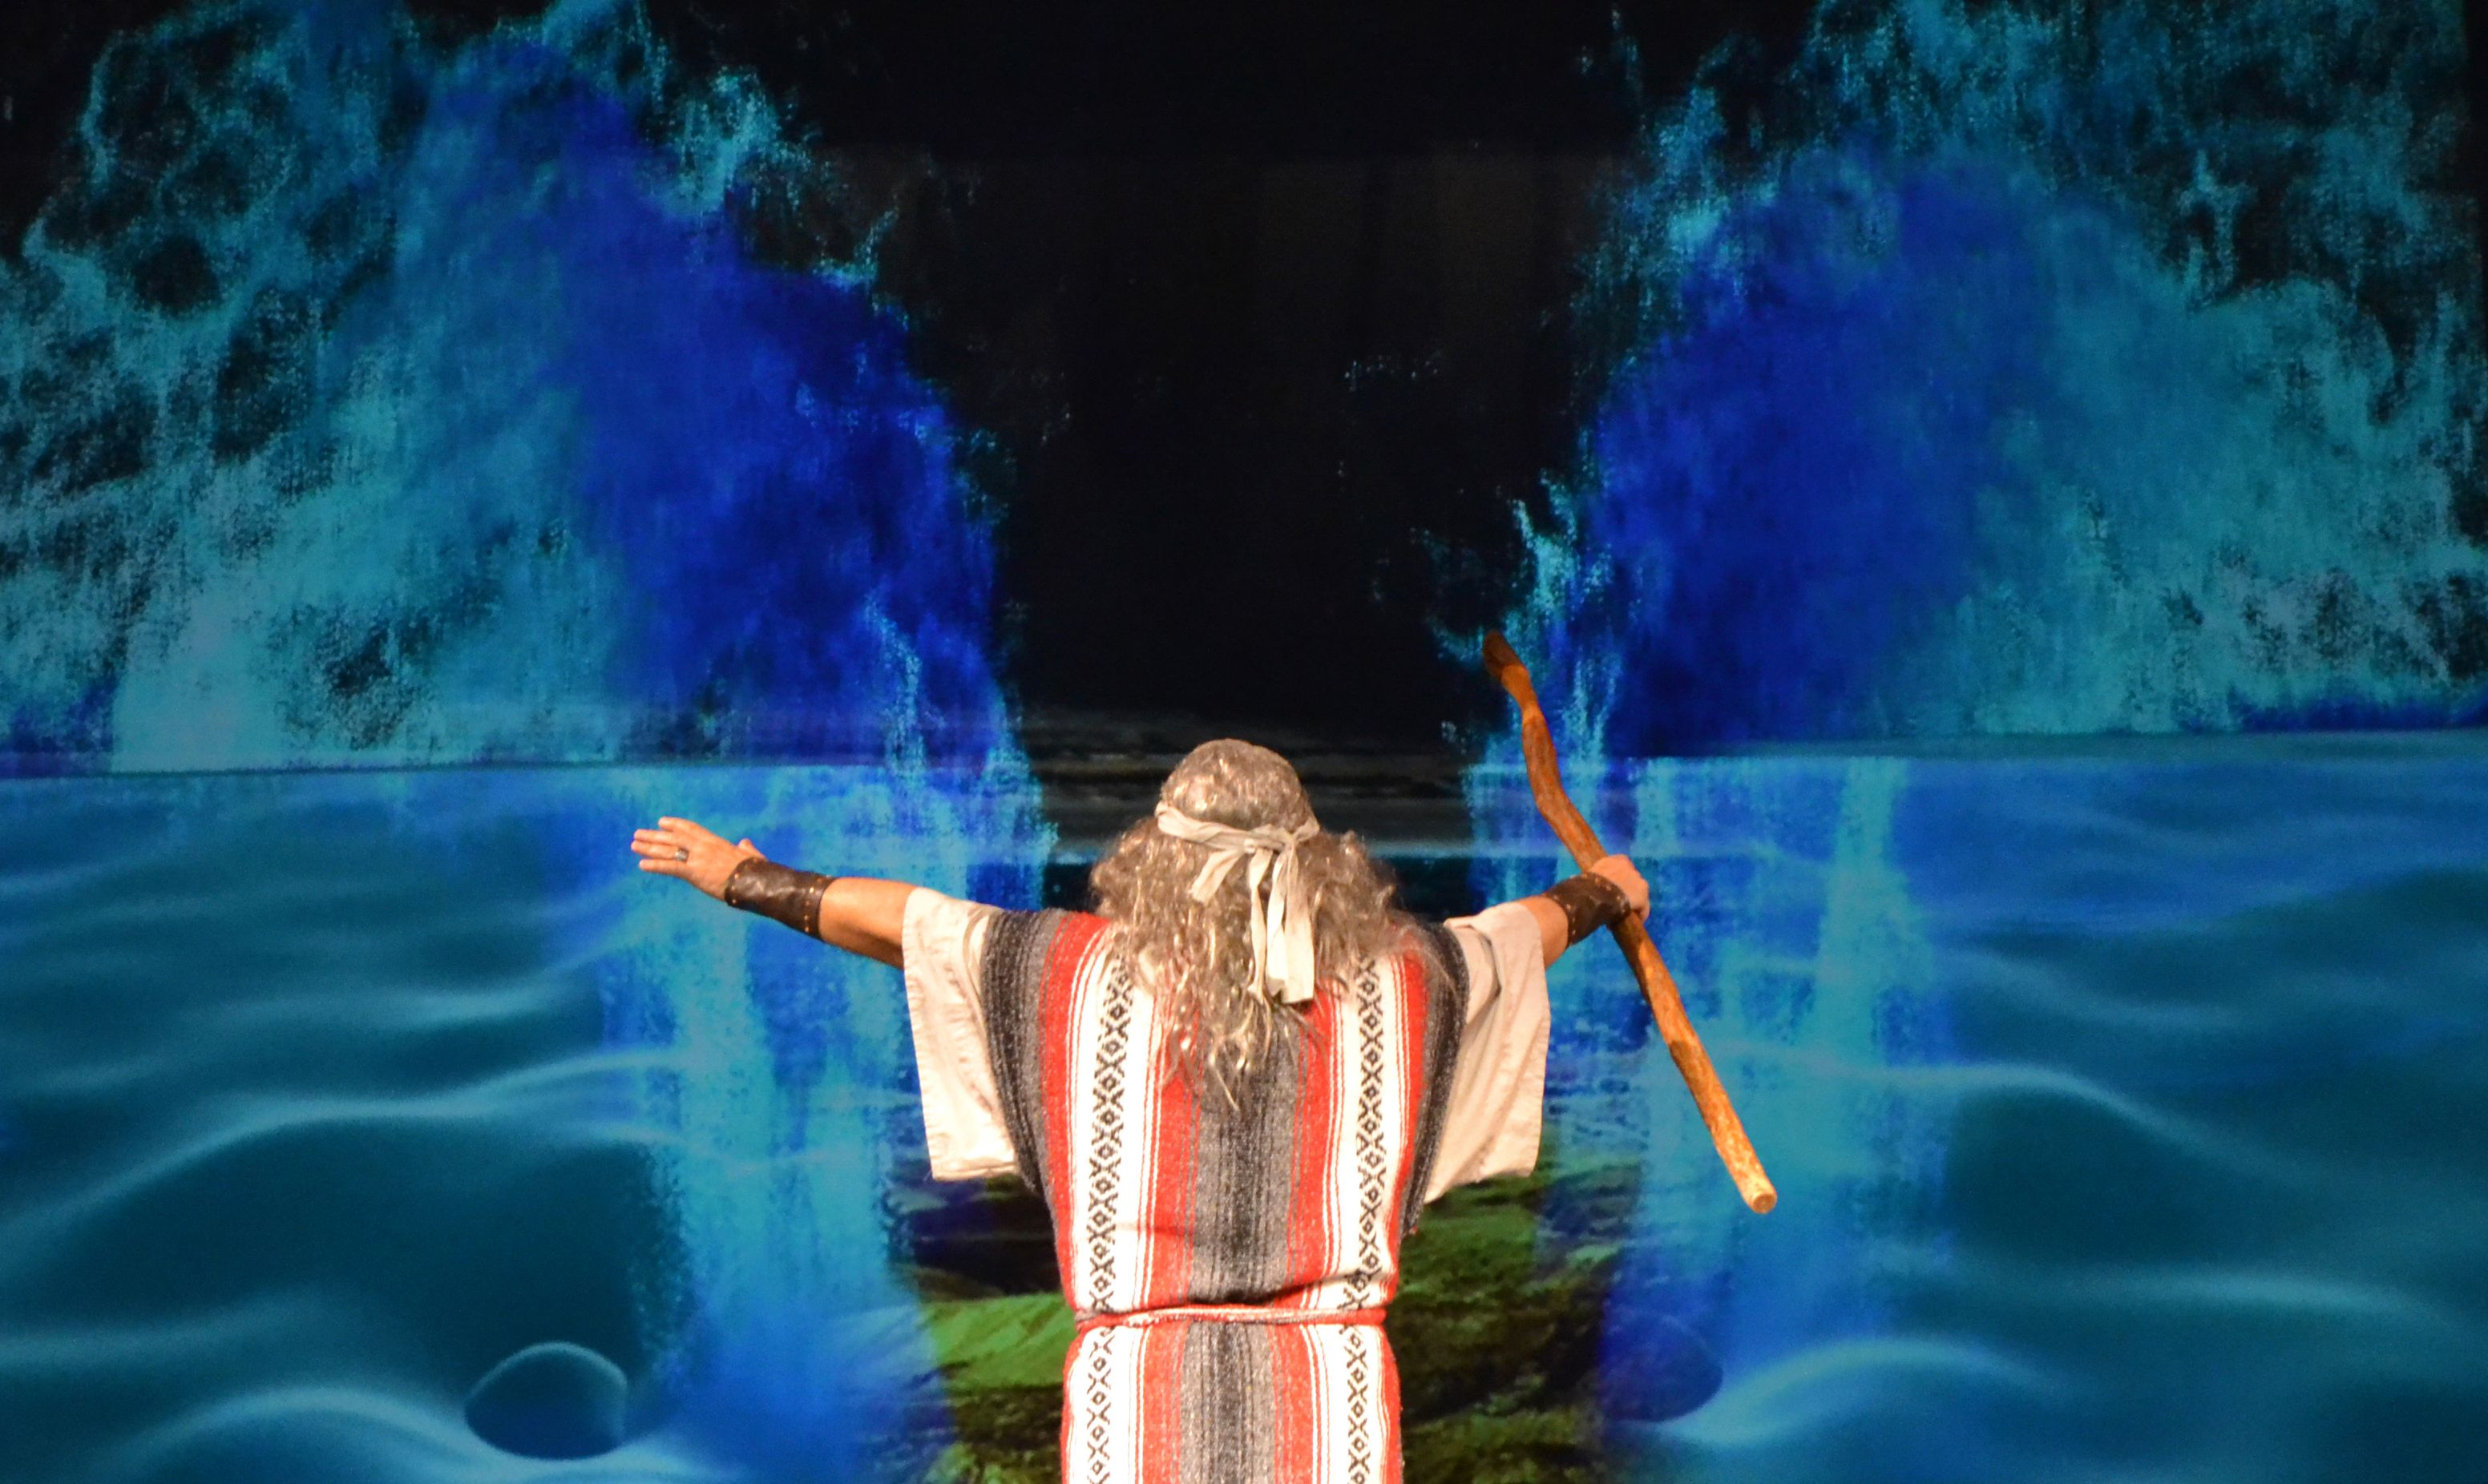 Biblical Times Theater - In this Christian drama the parting of the Red Sea comes alive!